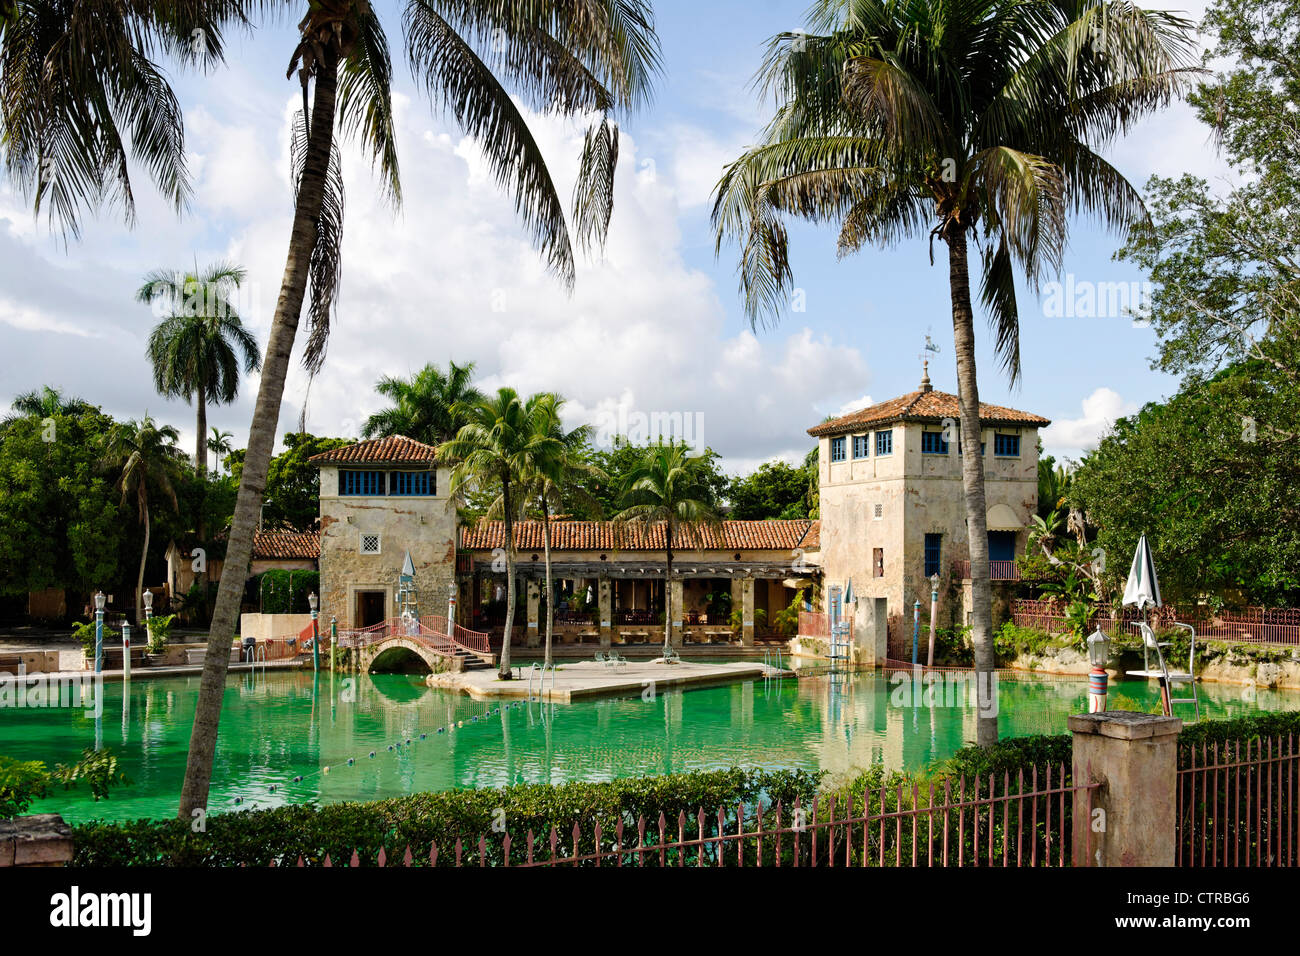 Venetian Pool in a Coral rock quarry in the prestigious former Coral Gables, Miami, Florida, USA - Stock Image